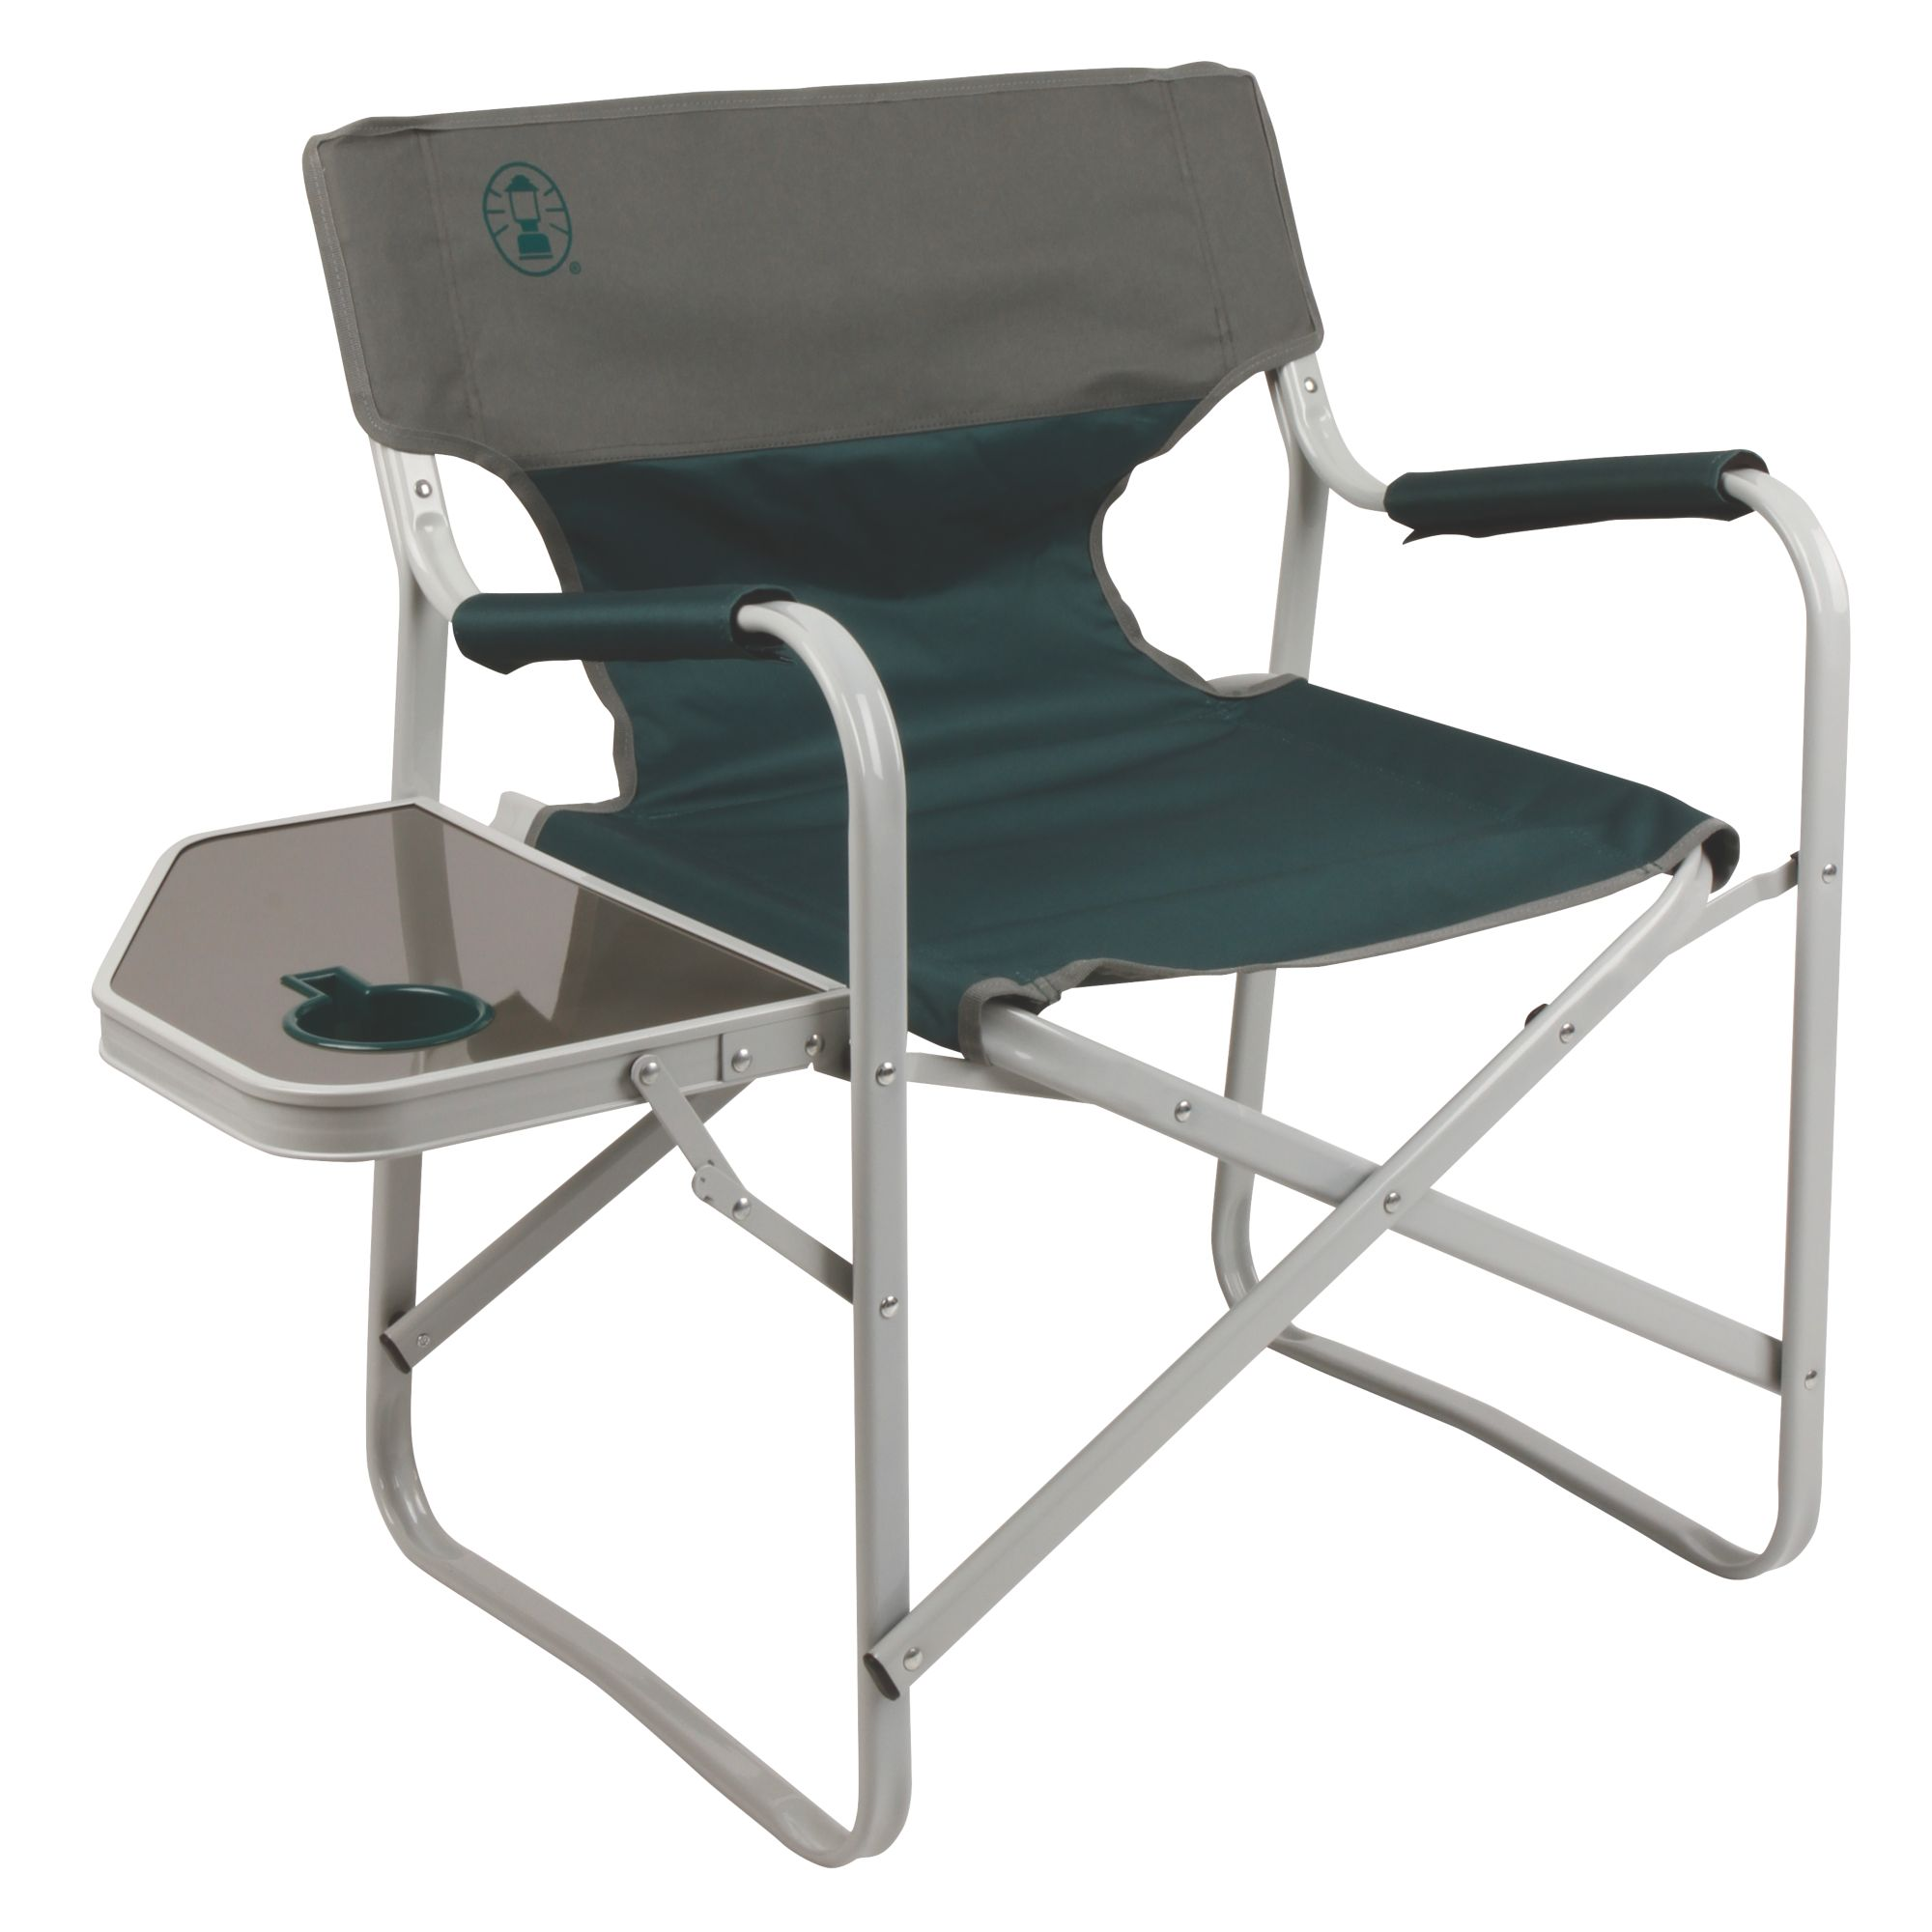 Coleman camp chairs - Coleman Camp Chairs